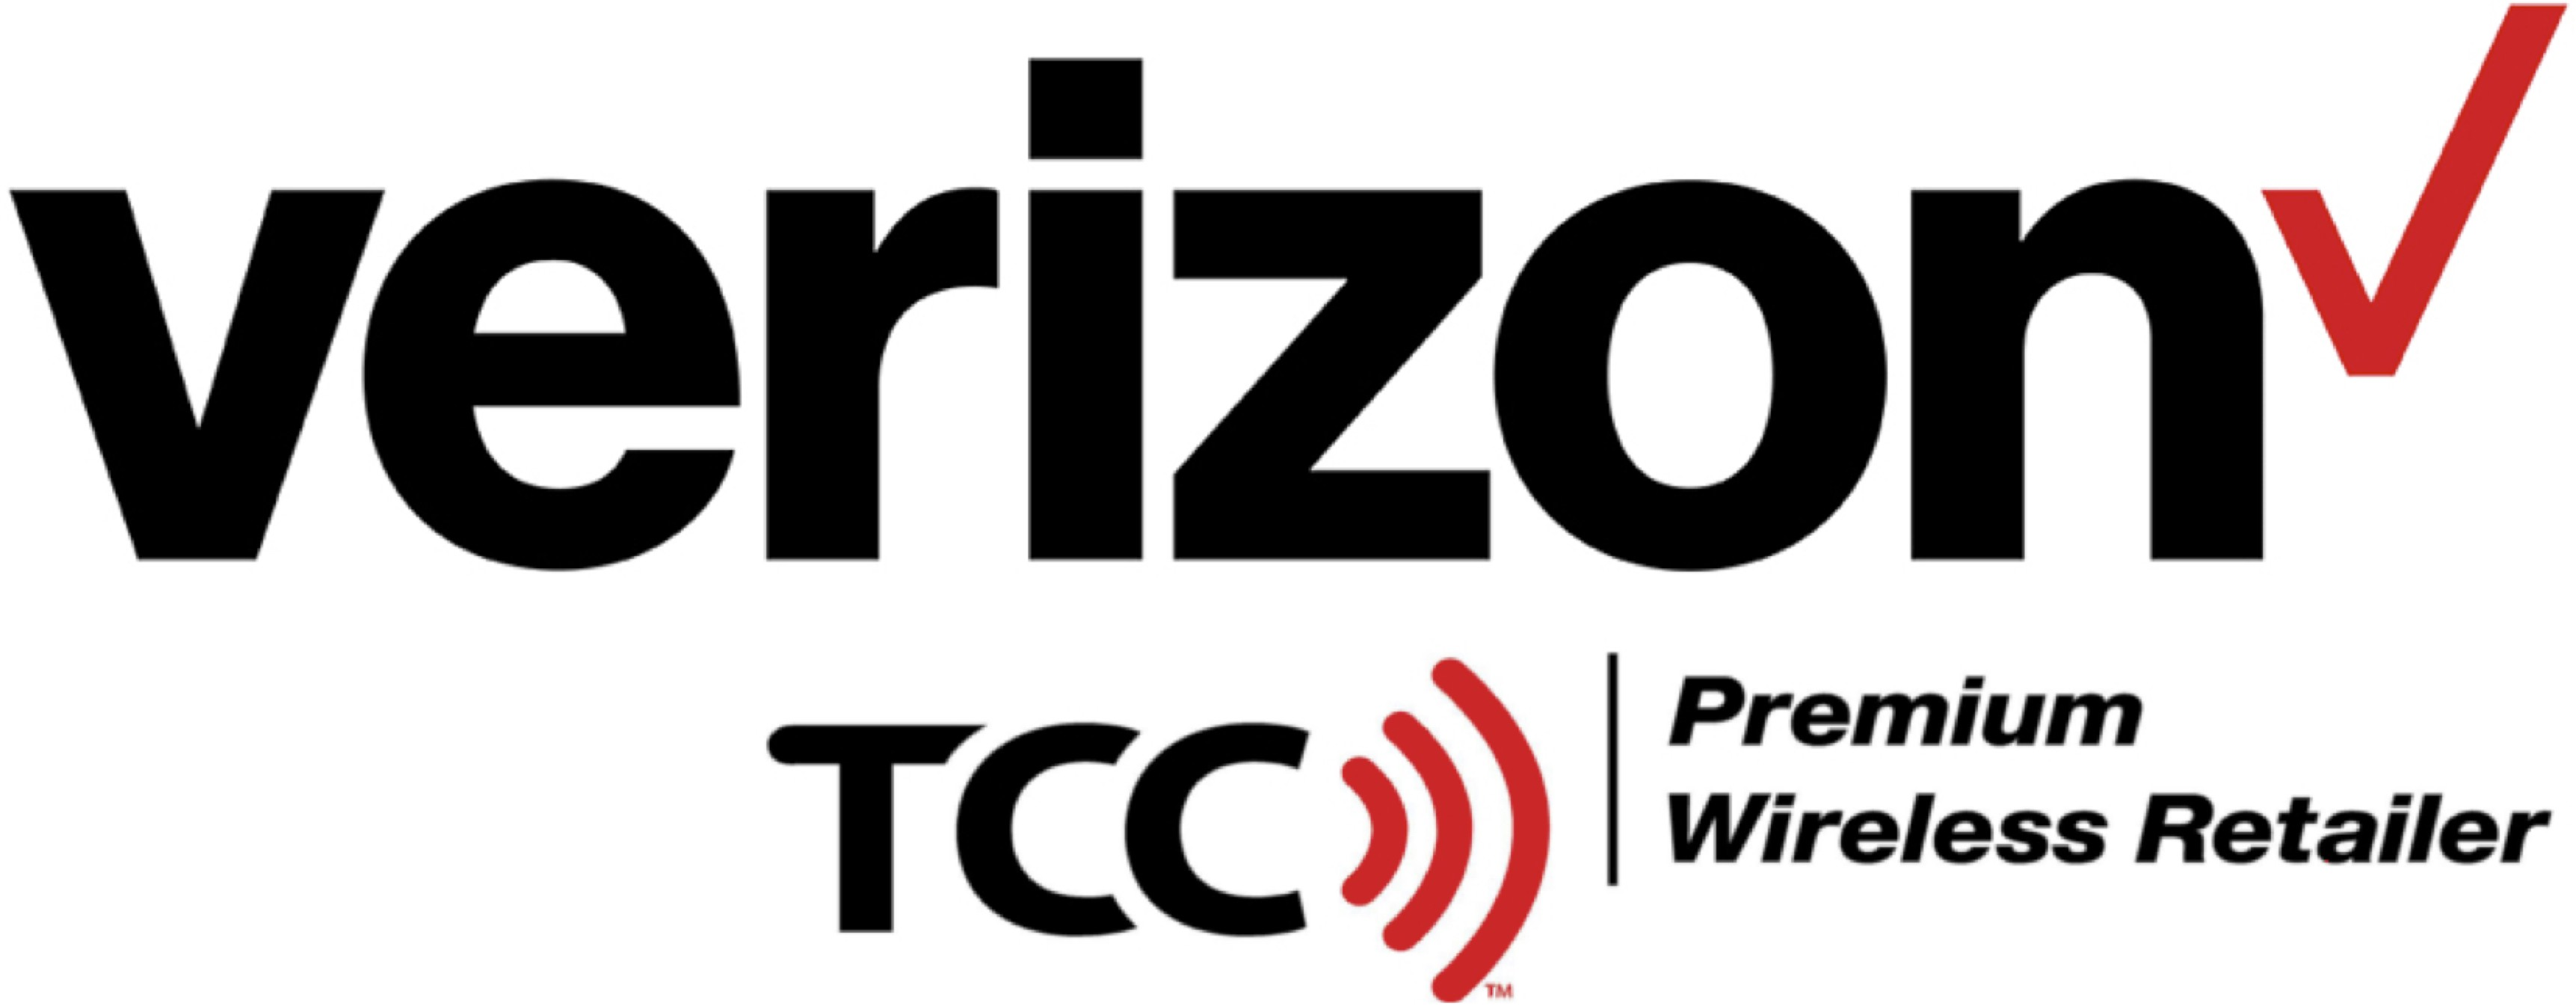 TCC Verizon Wireless